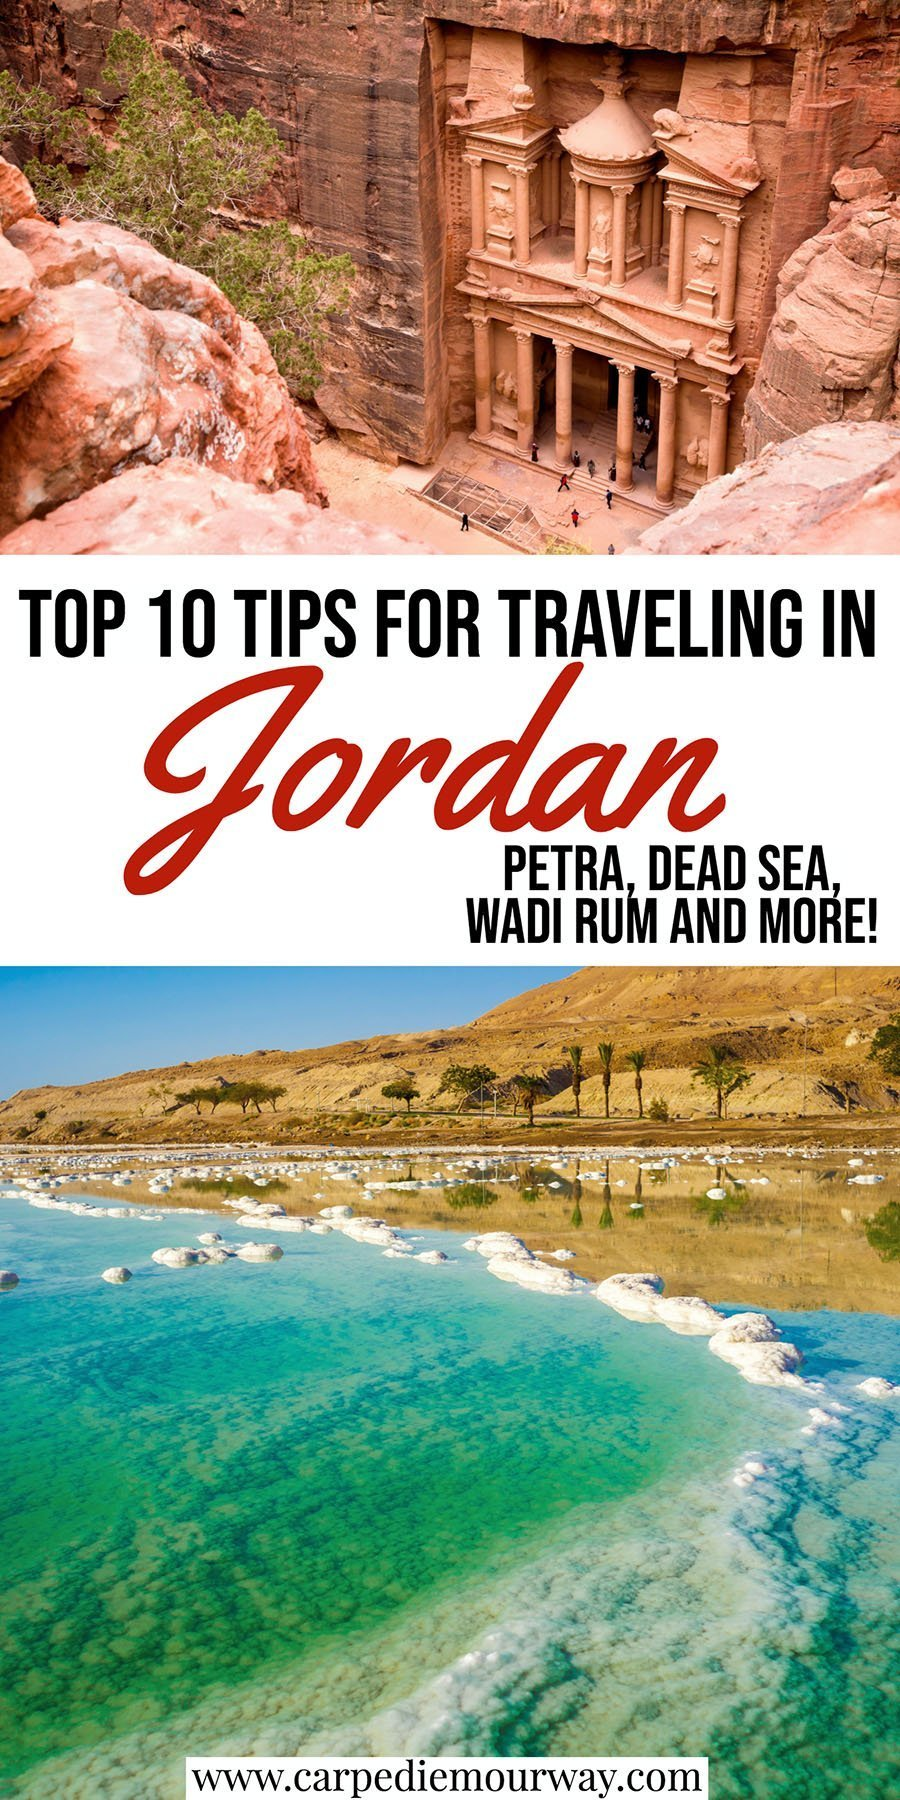 Jordan Travel Tips and Jordan Travel Advice